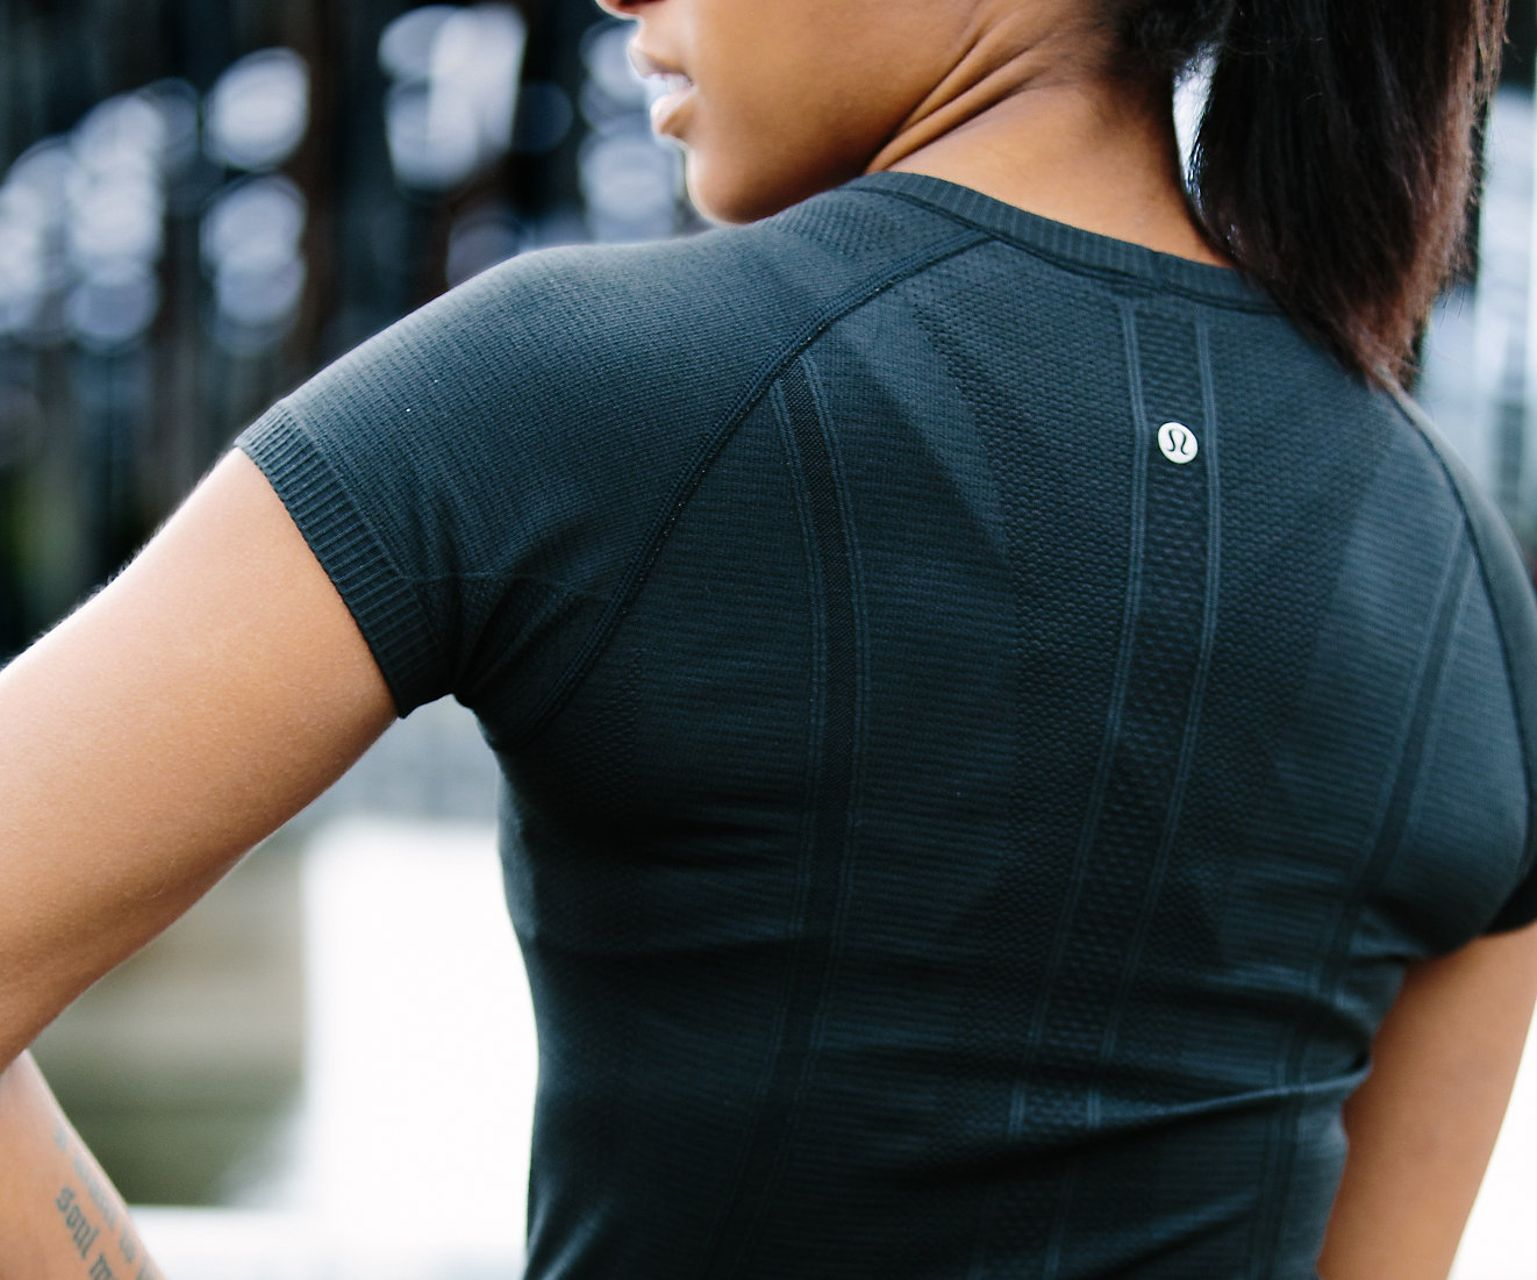 Lululemon Swiftly Tech Short Sleeve Crew - Black / Black